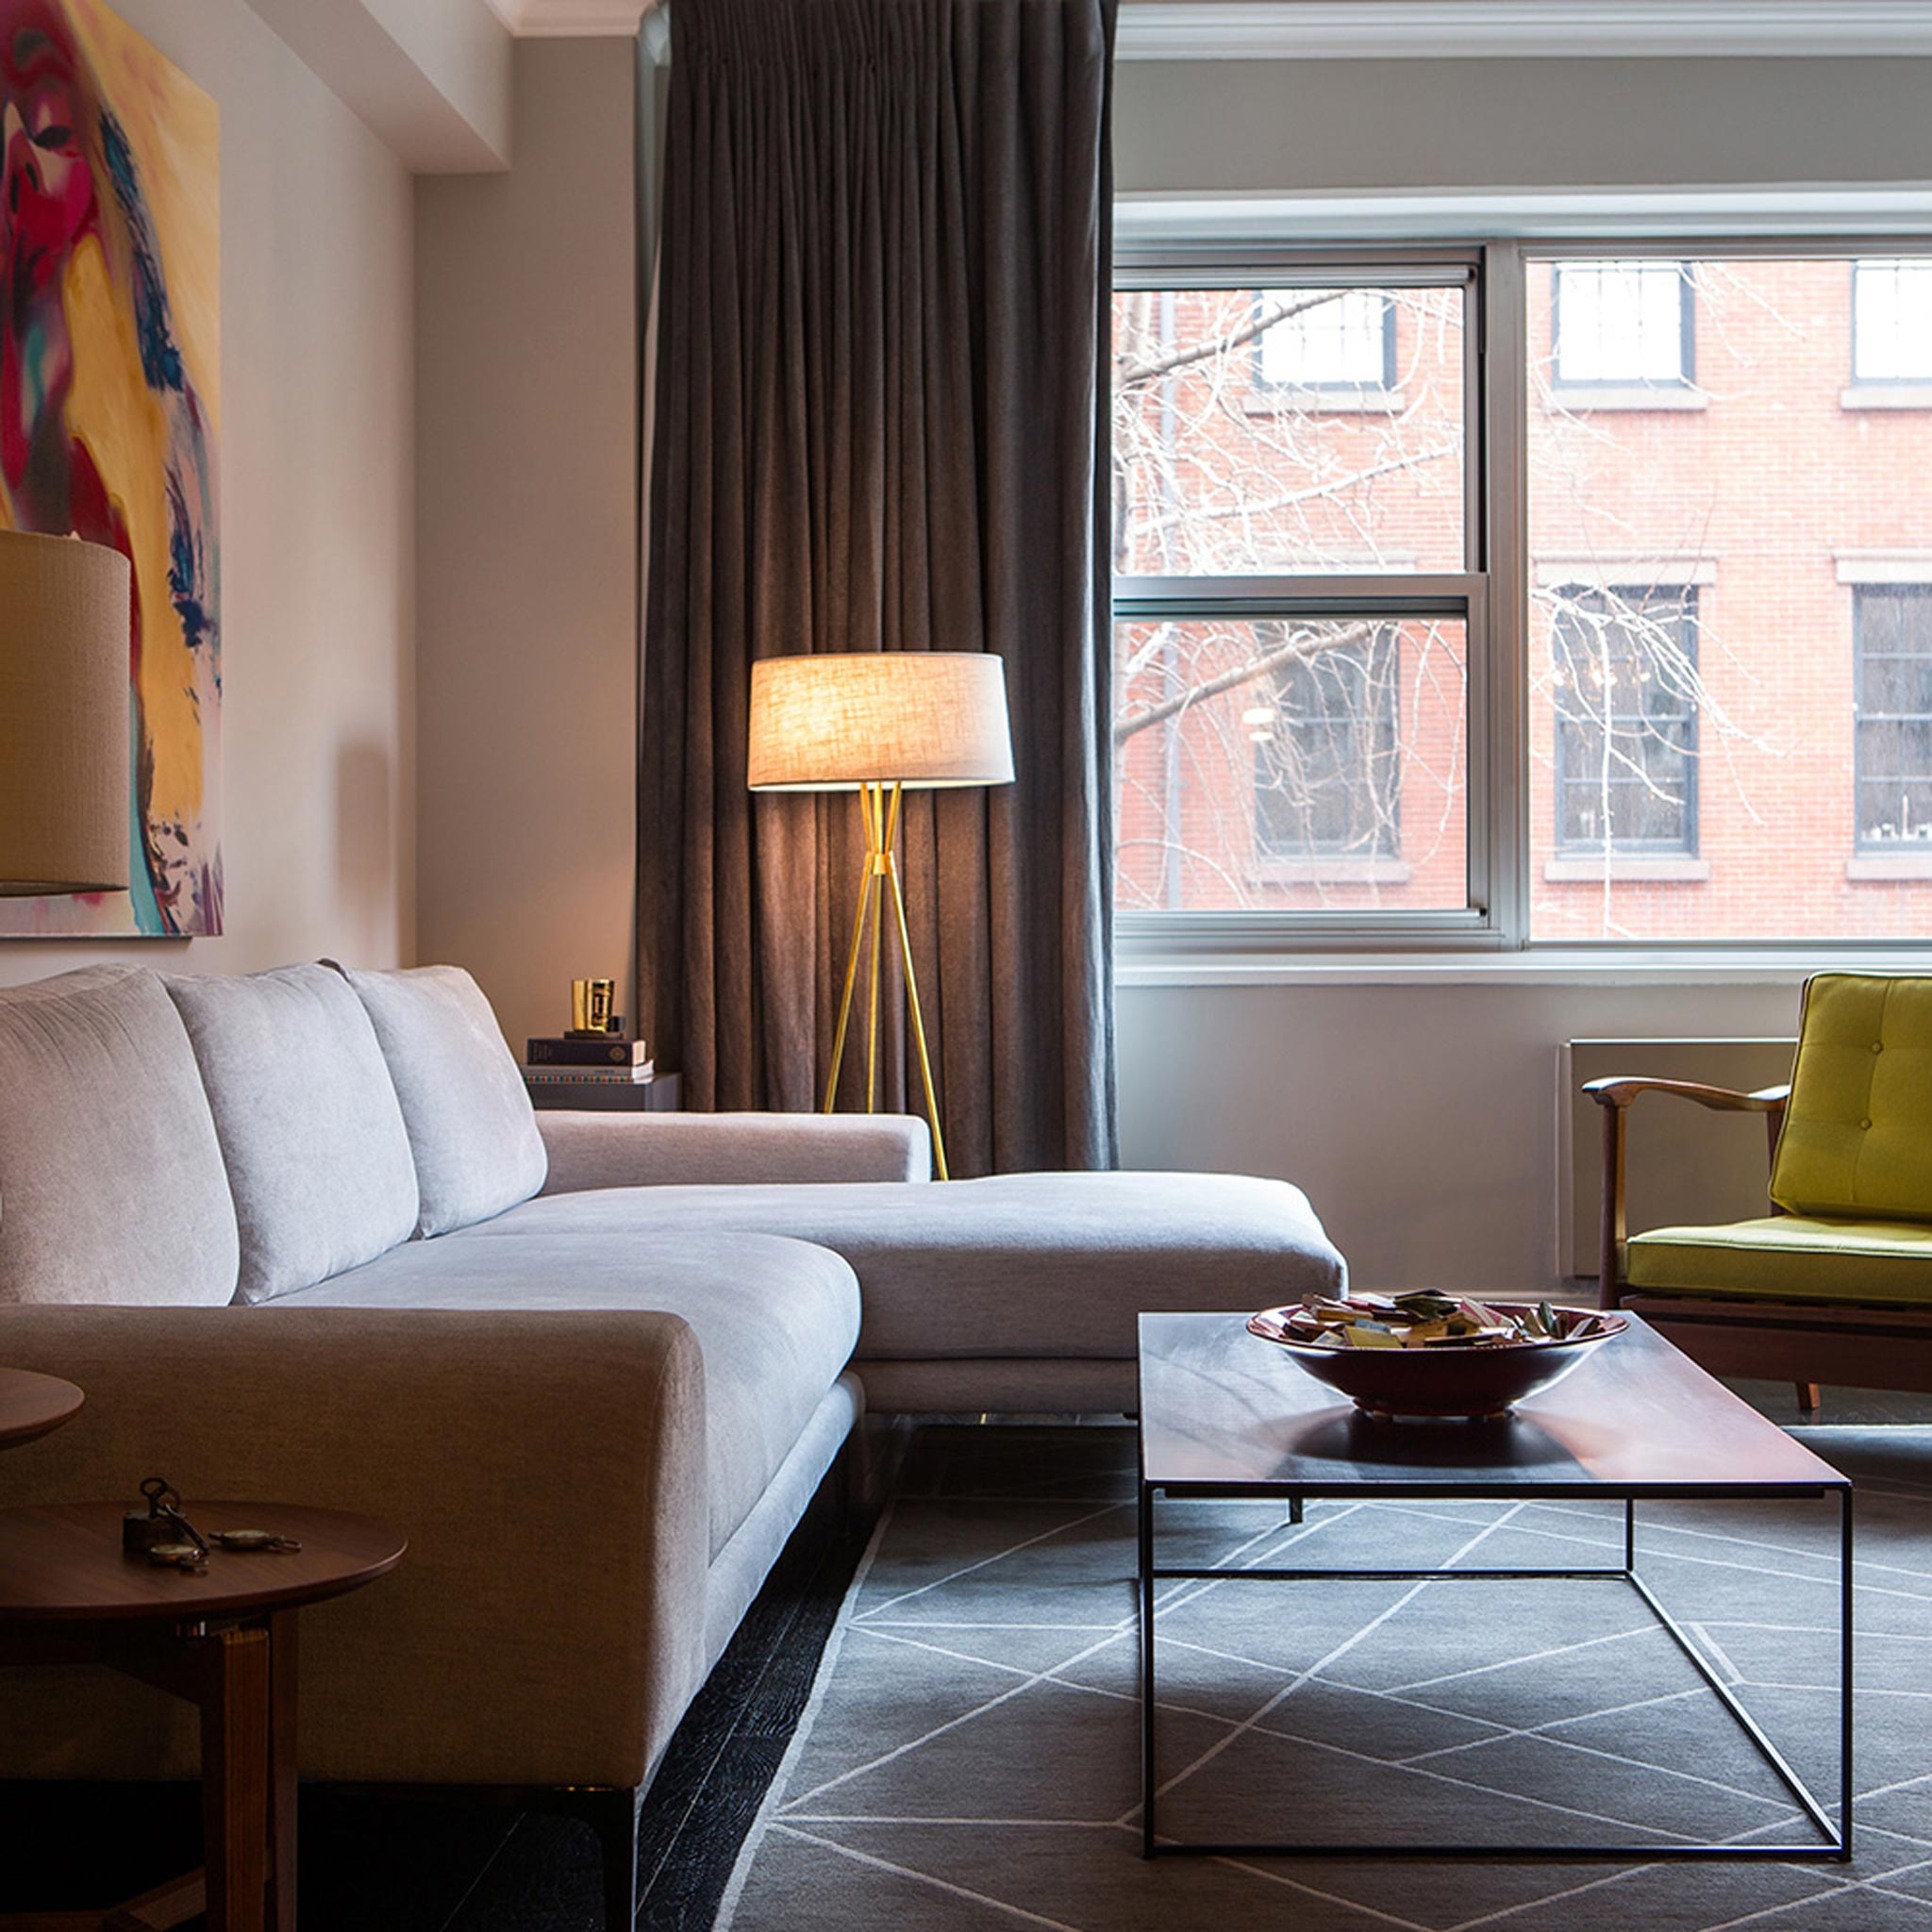 greenwich-village-apt-1.jpg